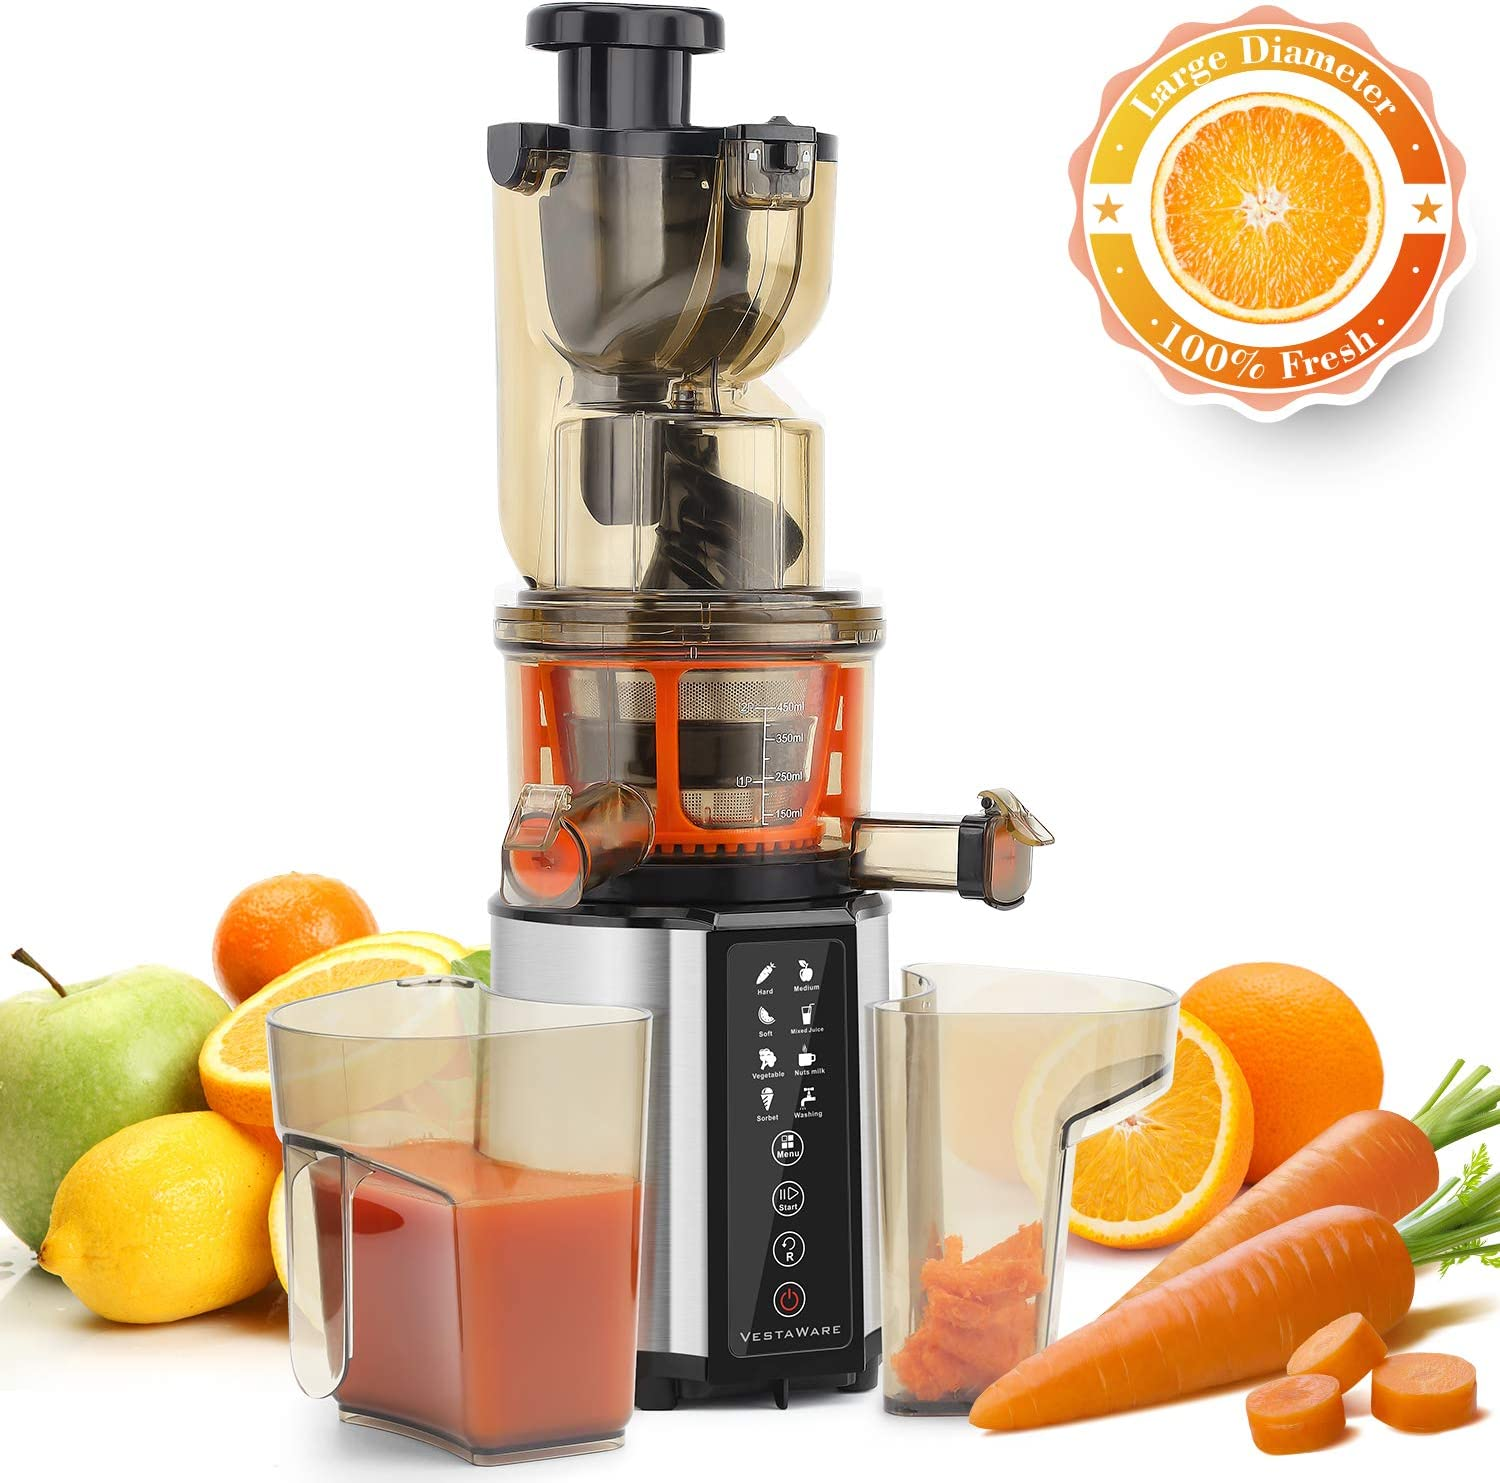 Juicer Machines, Vestaware Slow Masticating Juicer Extractor with Digital Control Panel, 3-Inch Chute Easy to Clean BPA Free Cold Press Juicer for Fruit and Vegetable, Free Juice Recipes, Silver